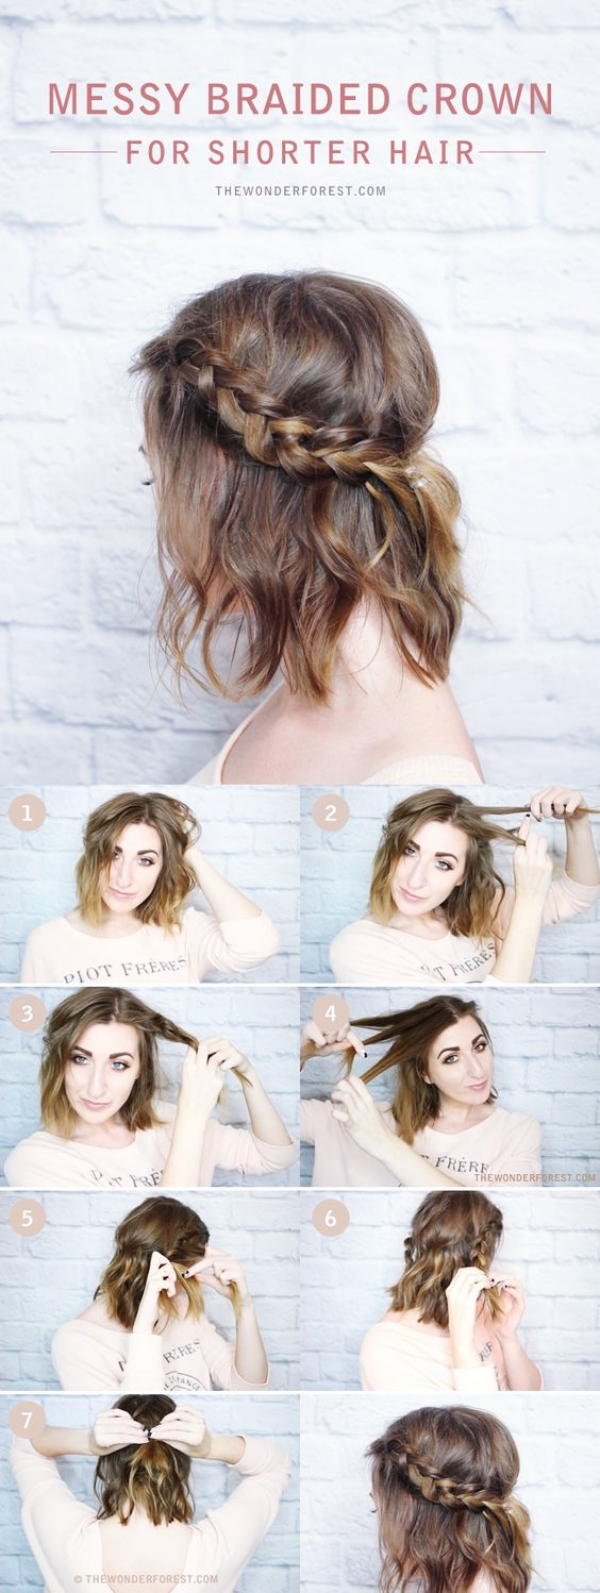 40 Easy Hairstyles (No Haircuts) for Women with Short Hair ...